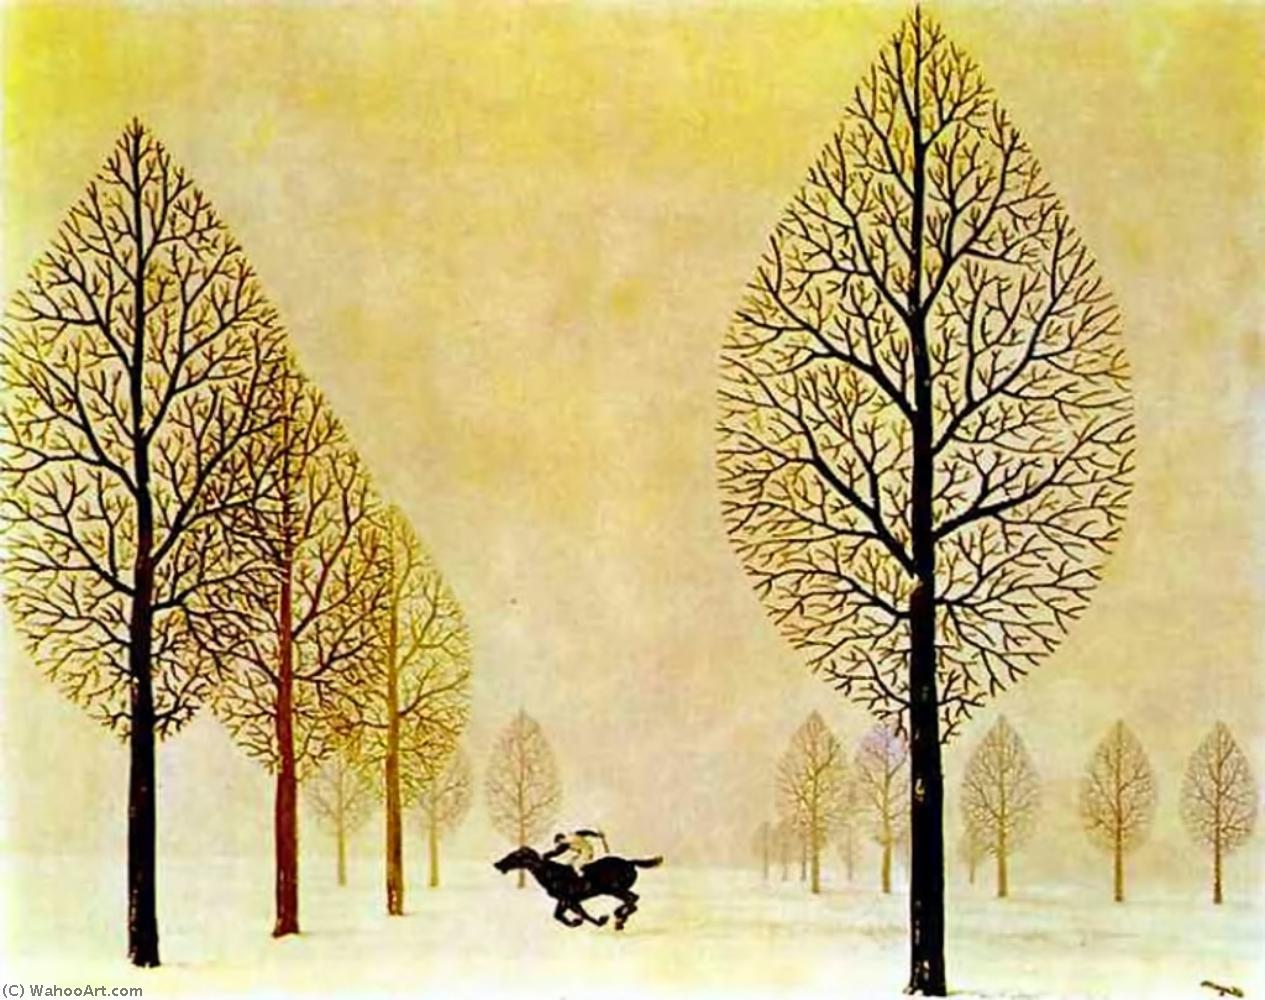 The lost jockey, Gouache by Rene Magritte (1898-1967, Belgium)